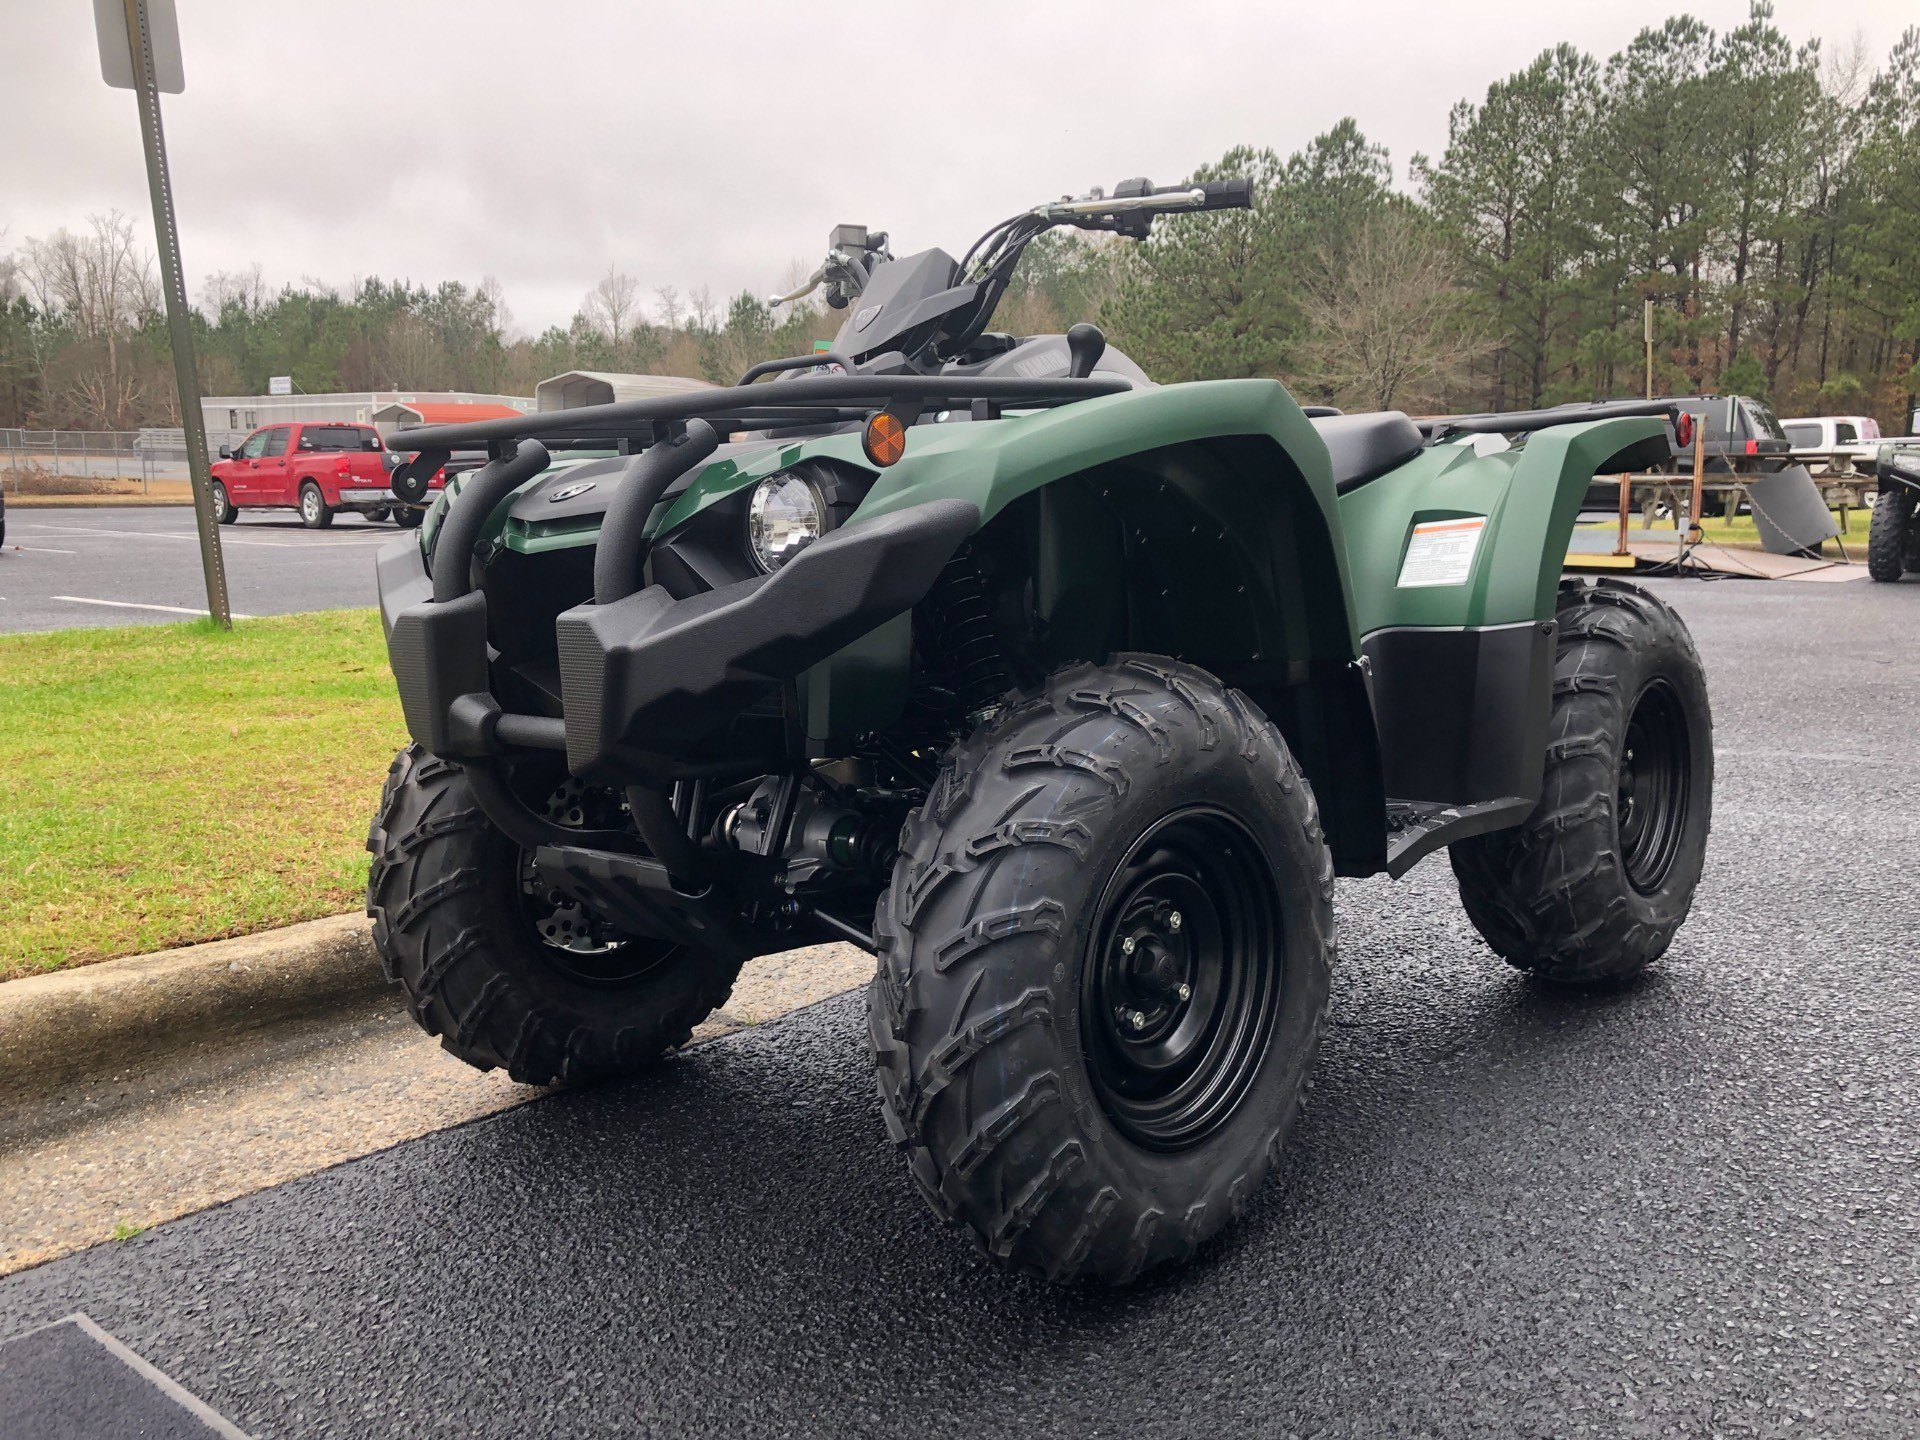 2019 Yamaha Kodiak 450 in Greenville, North Carolina - Photo 7